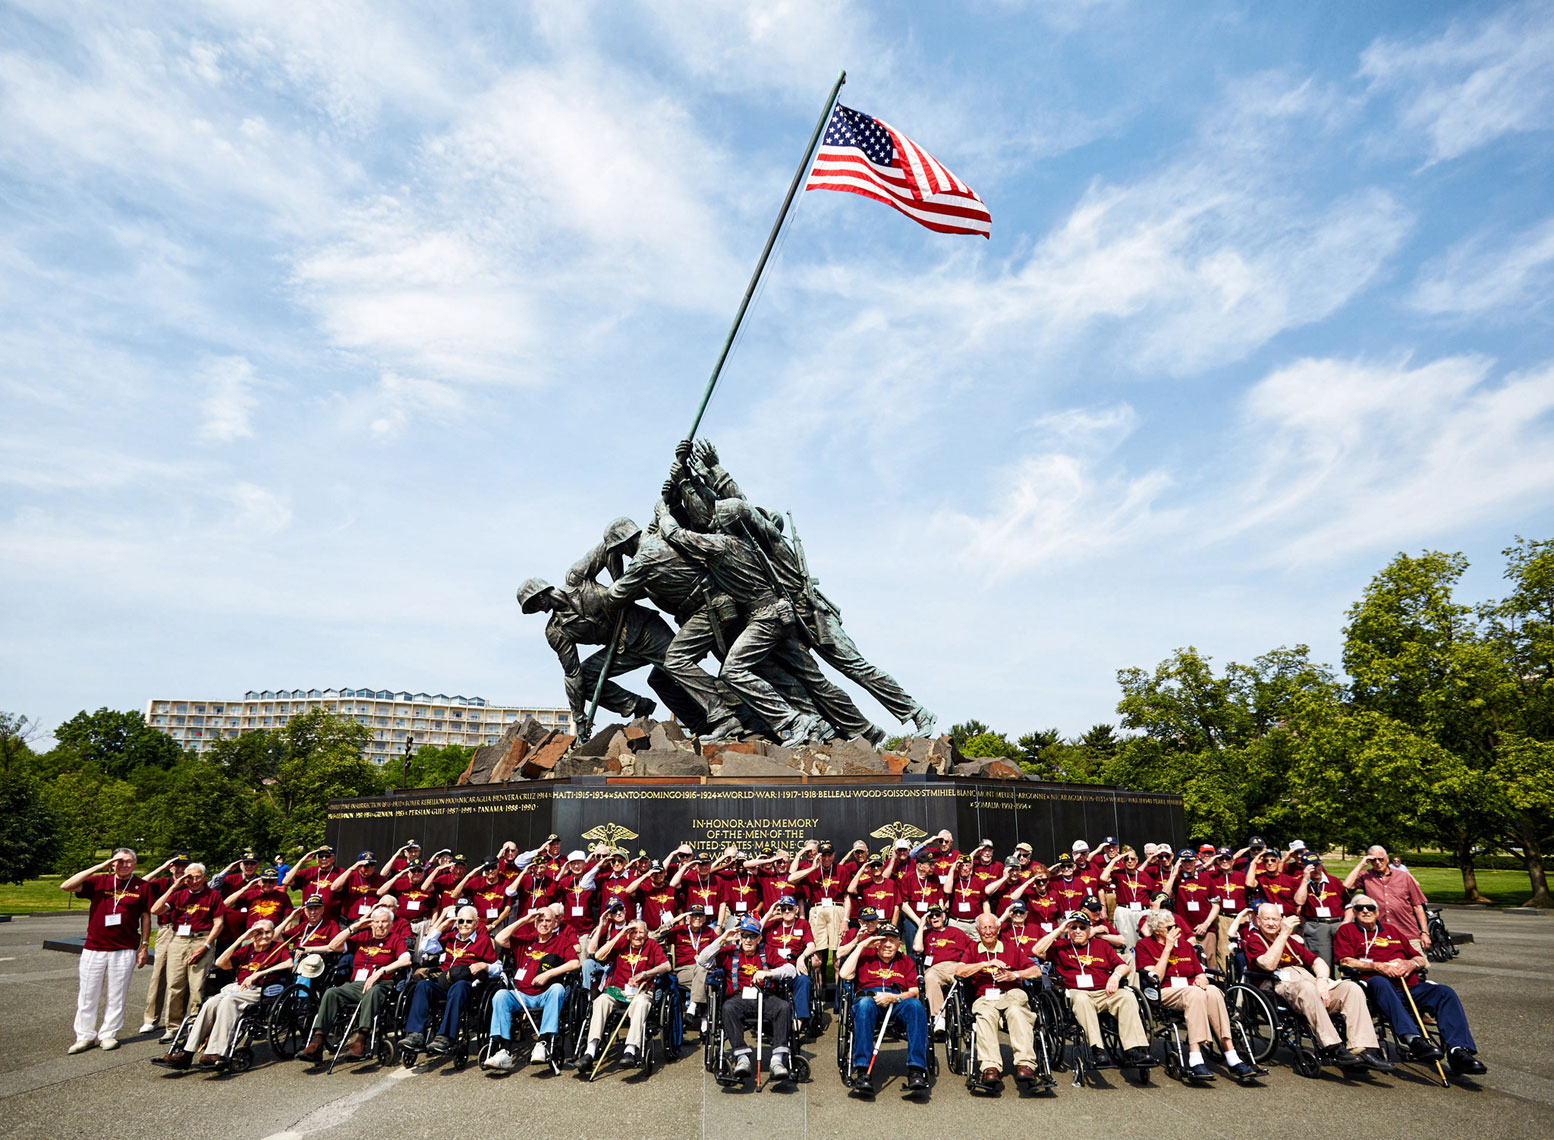 Vets/Iwo Jima/group/Honor Flight/Wash D.C.